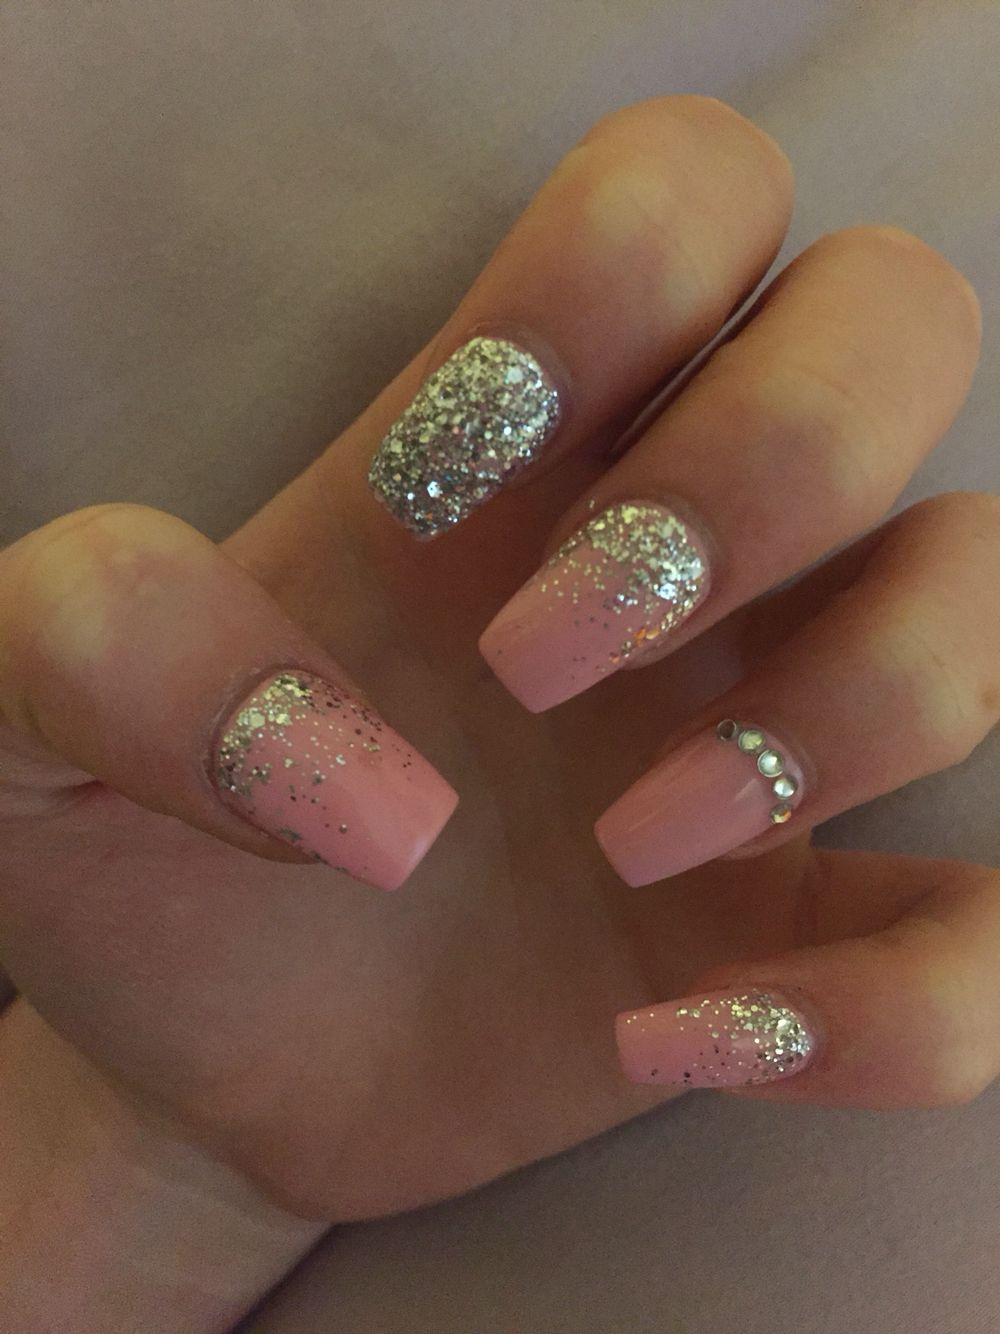 Pink Silver Coffin Gel Acrylic Nails For Prom Ombre Sparkles Small Stones Pink Acrylic Nails Prom Nails Silver Prom Nails